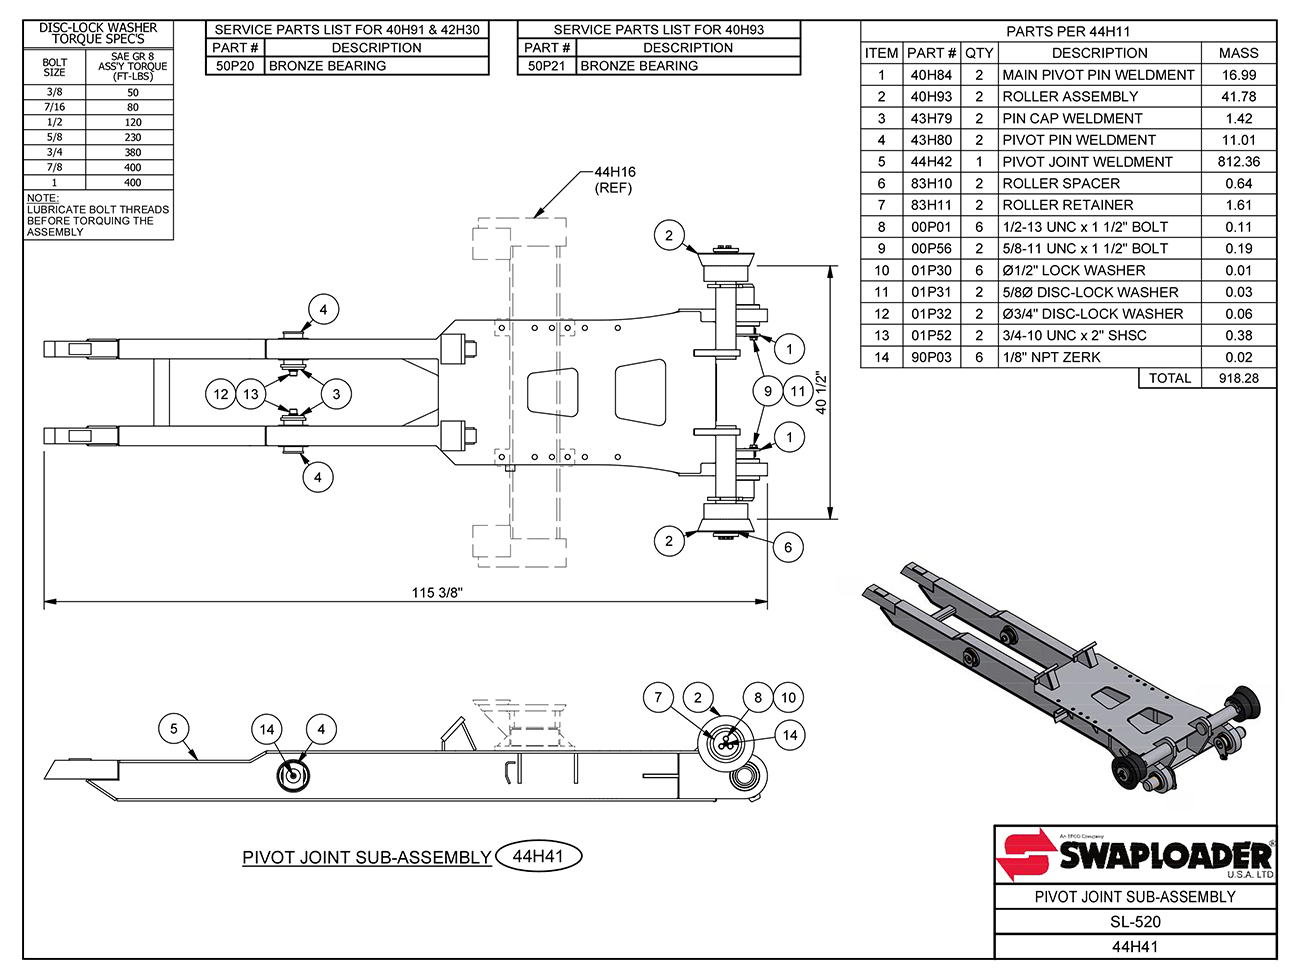 Sl-520 Pivot Joint Sub-Assembly Diagram